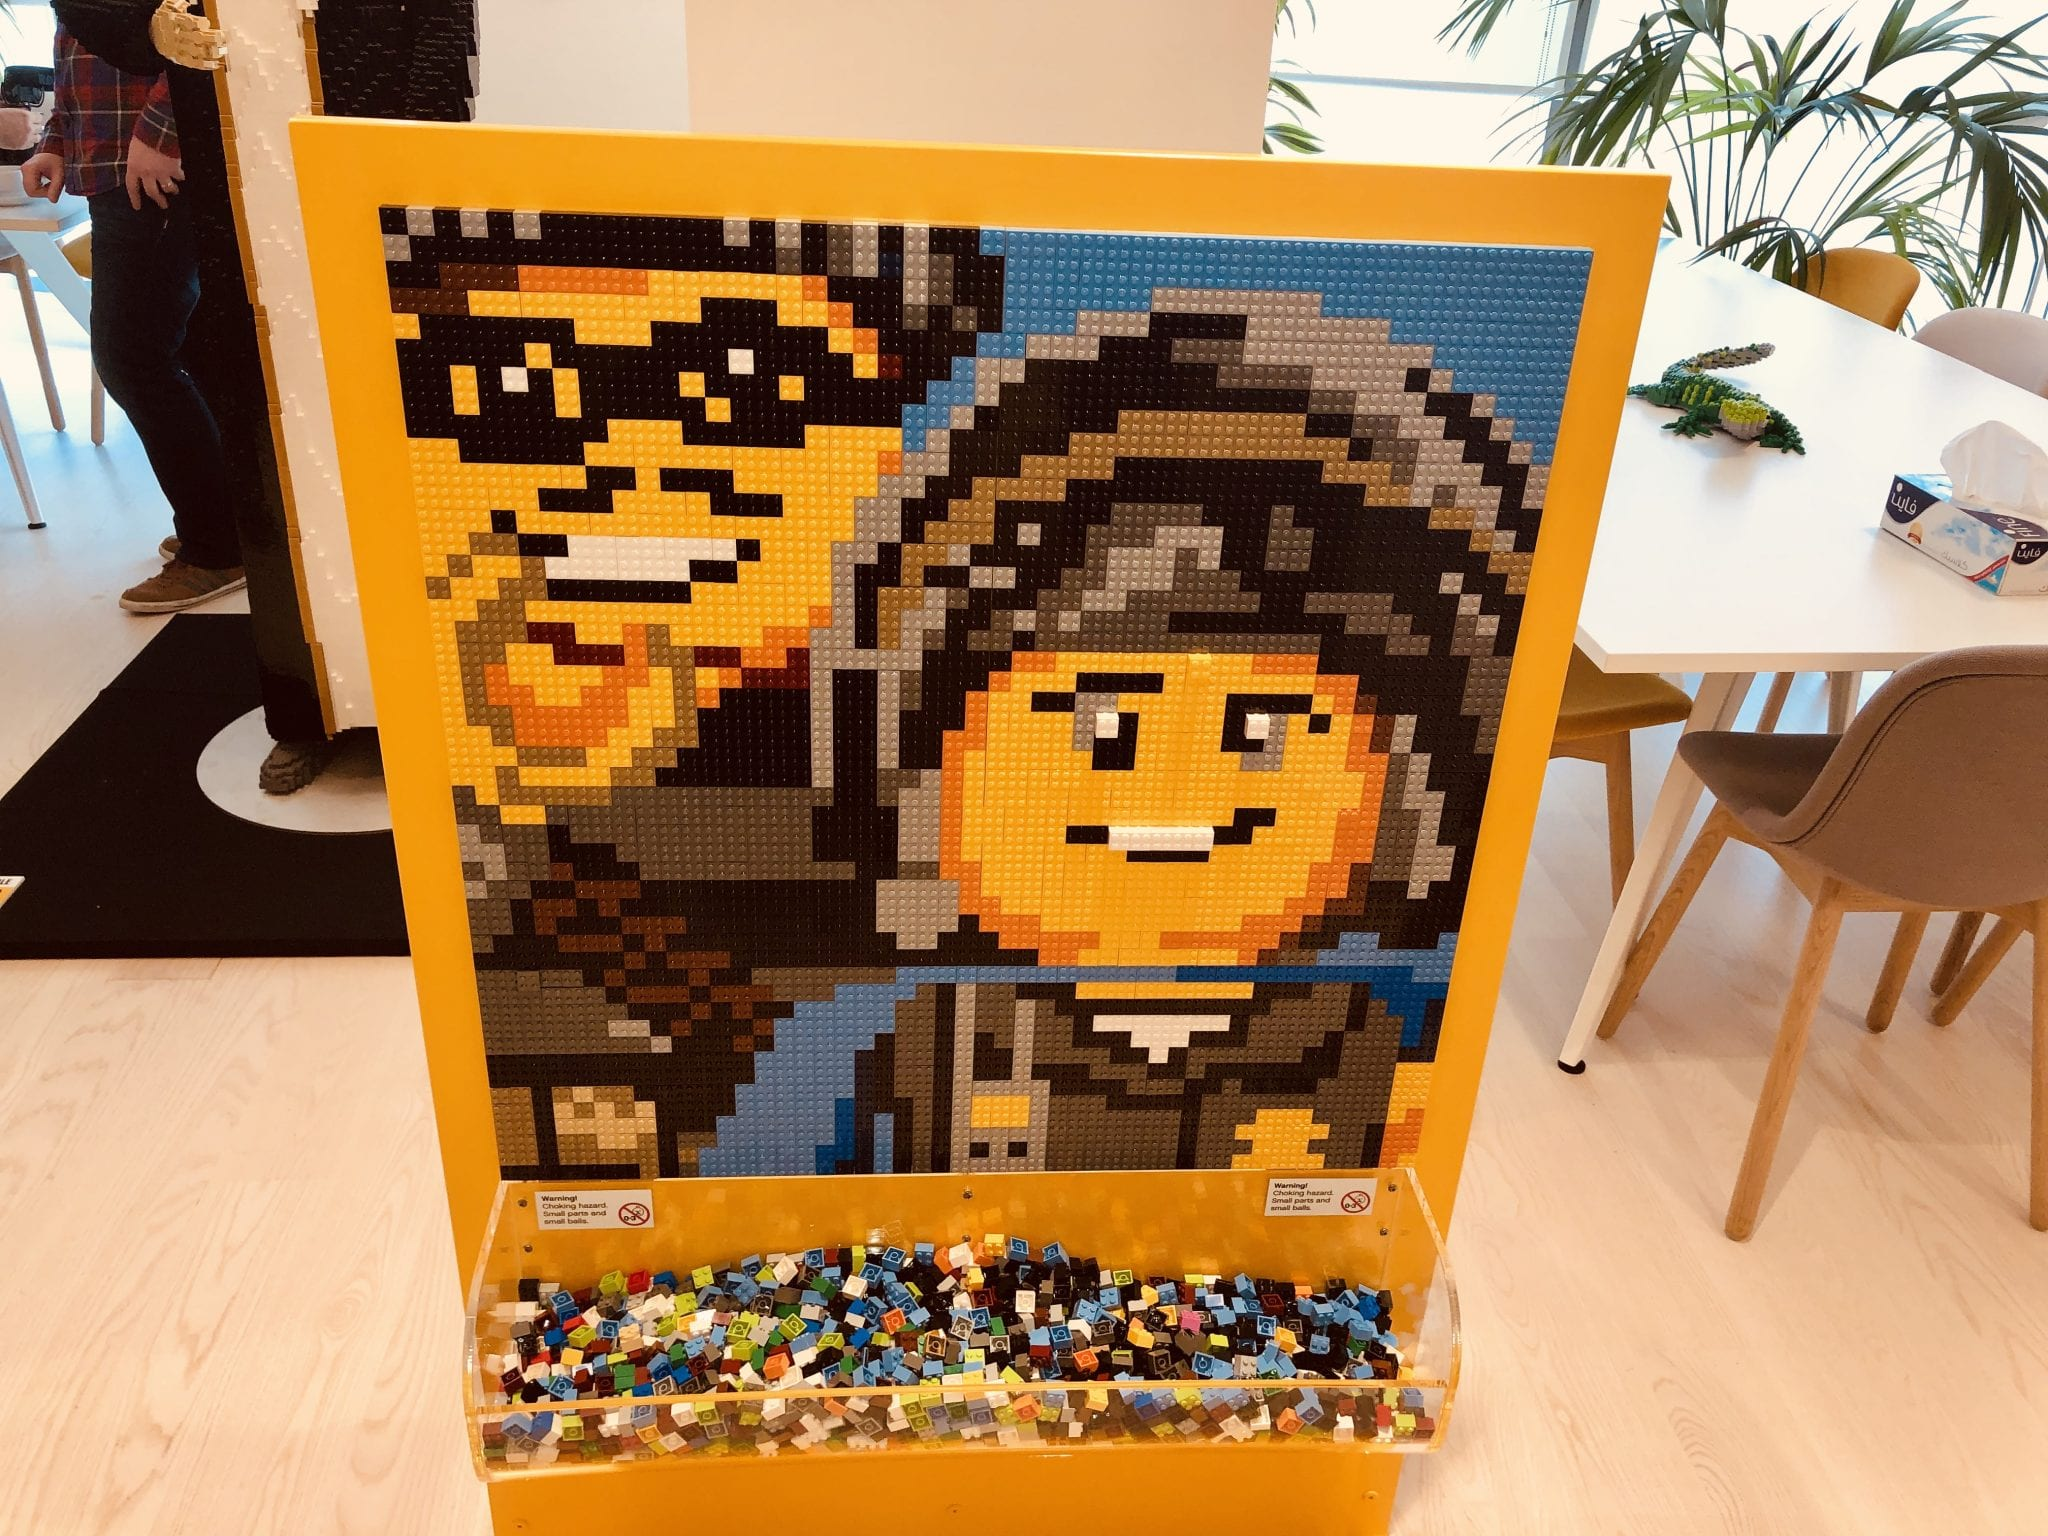 Office lego Halloween This Office Is Made Out Of Lego 1048 Channel This Office Is Made Out Of Lego 1048 Channel